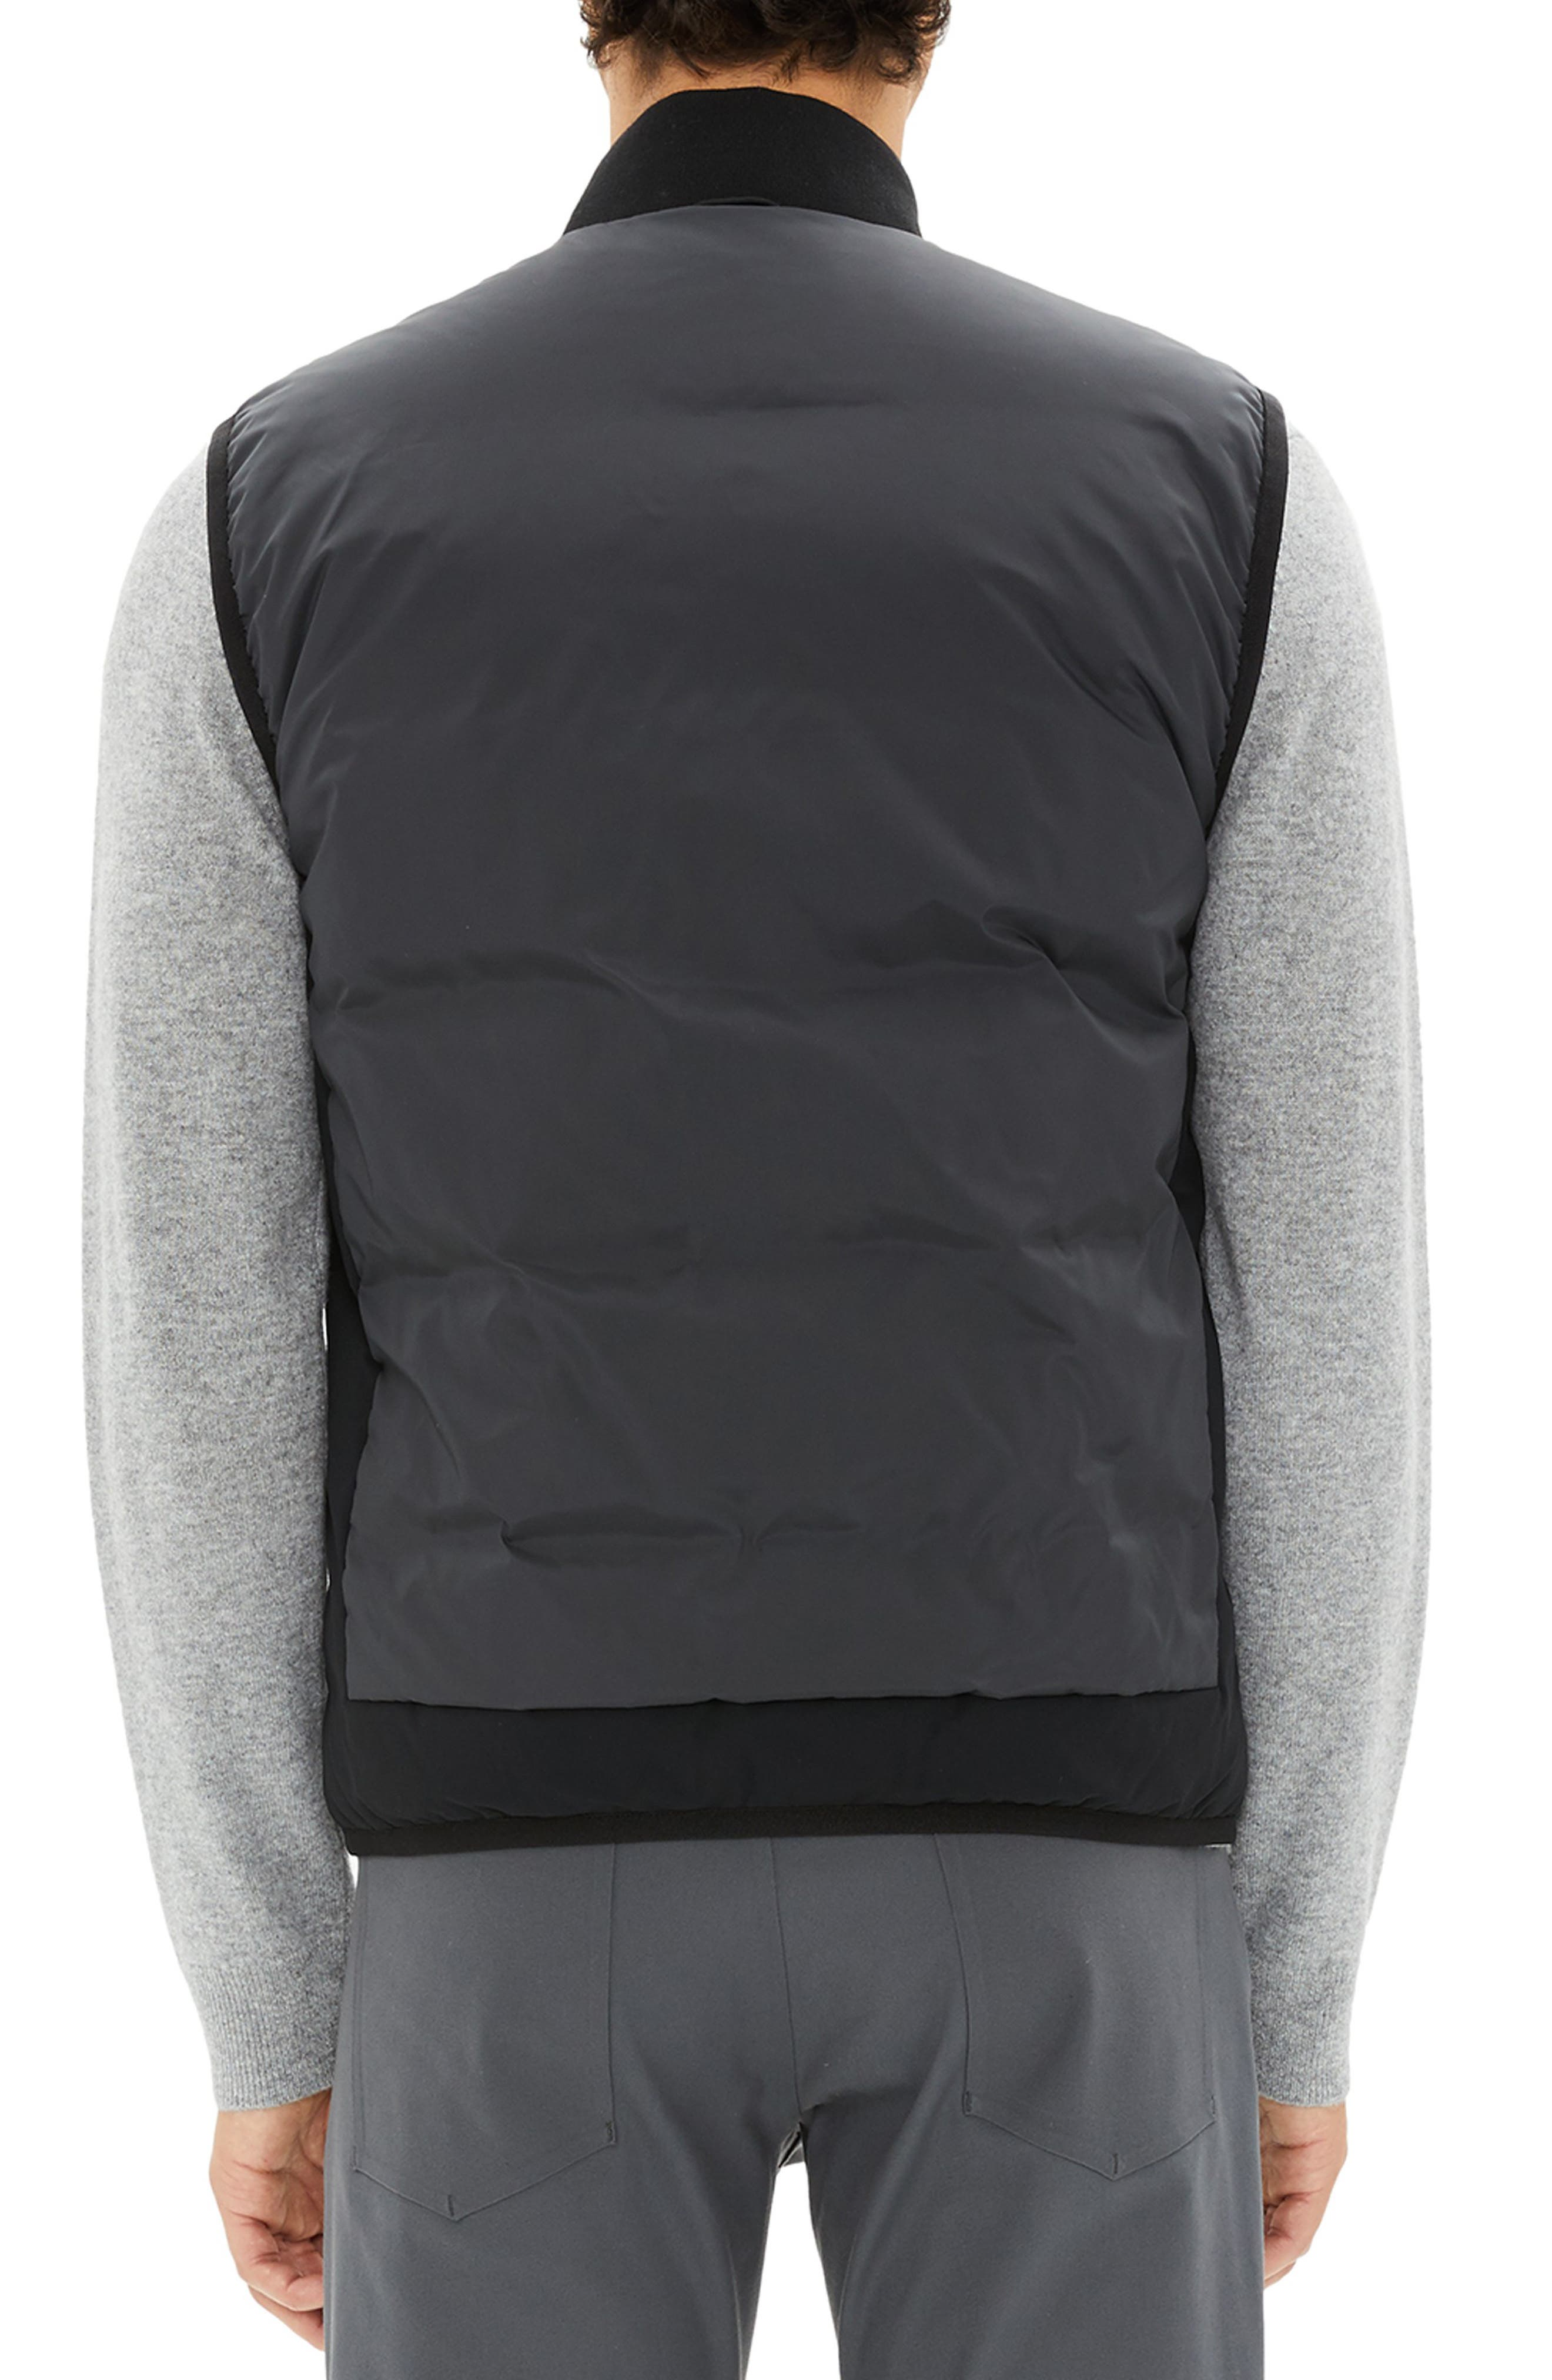 Greene Regular Fit Vest,                             Alternate thumbnail 2, color,                             001